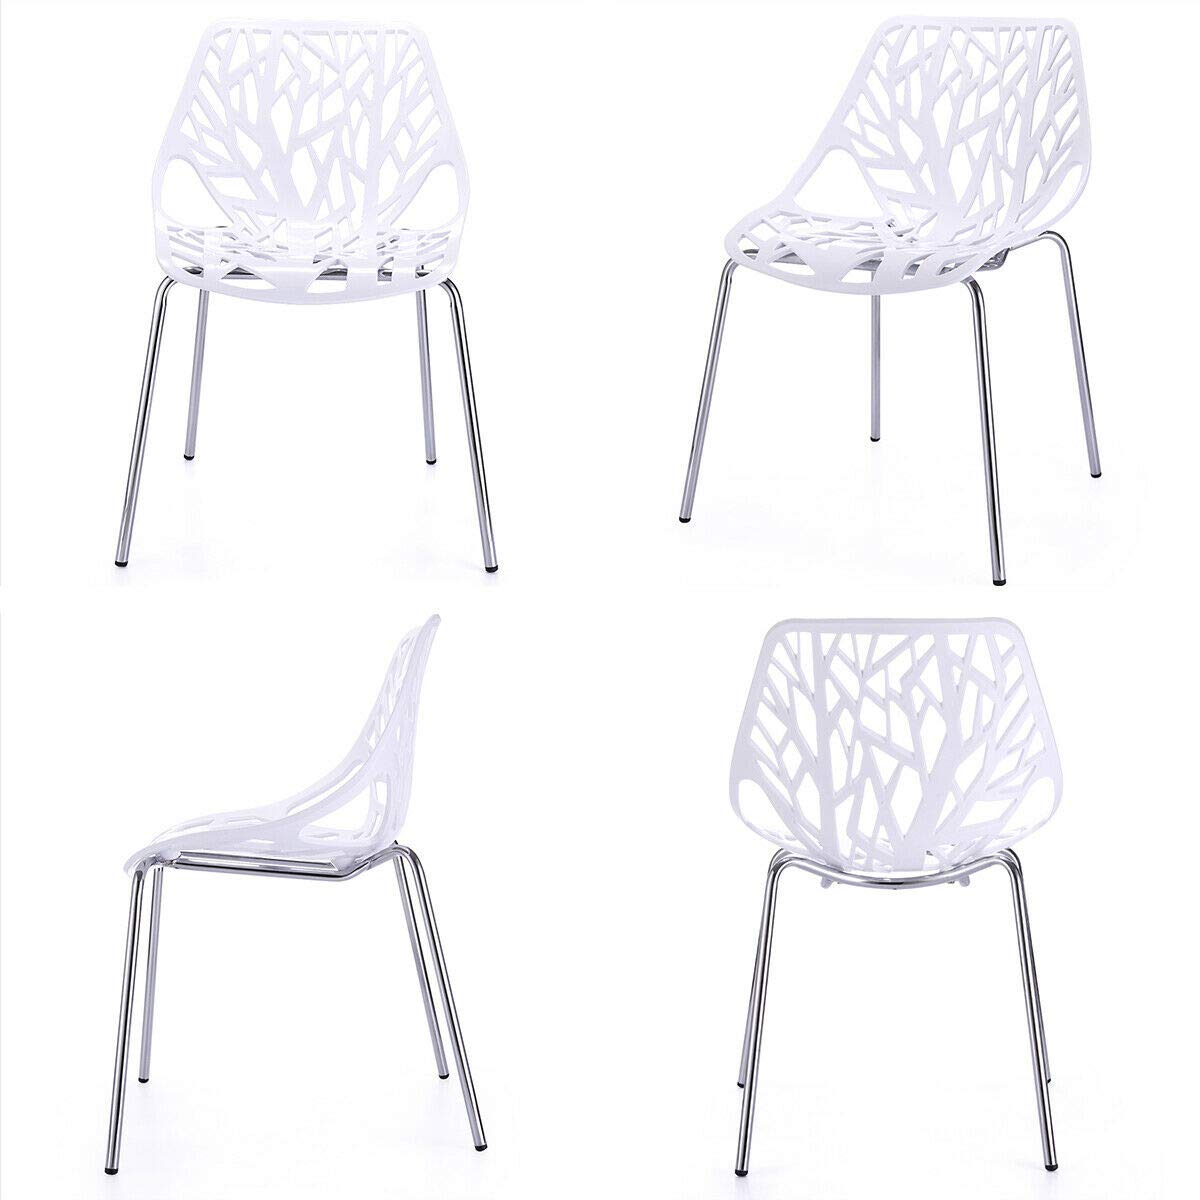 White Modern Dining Chairs Luxury Design Birch Chairs Comfortable Seat Living Room Home Furniture Decor Set of 4